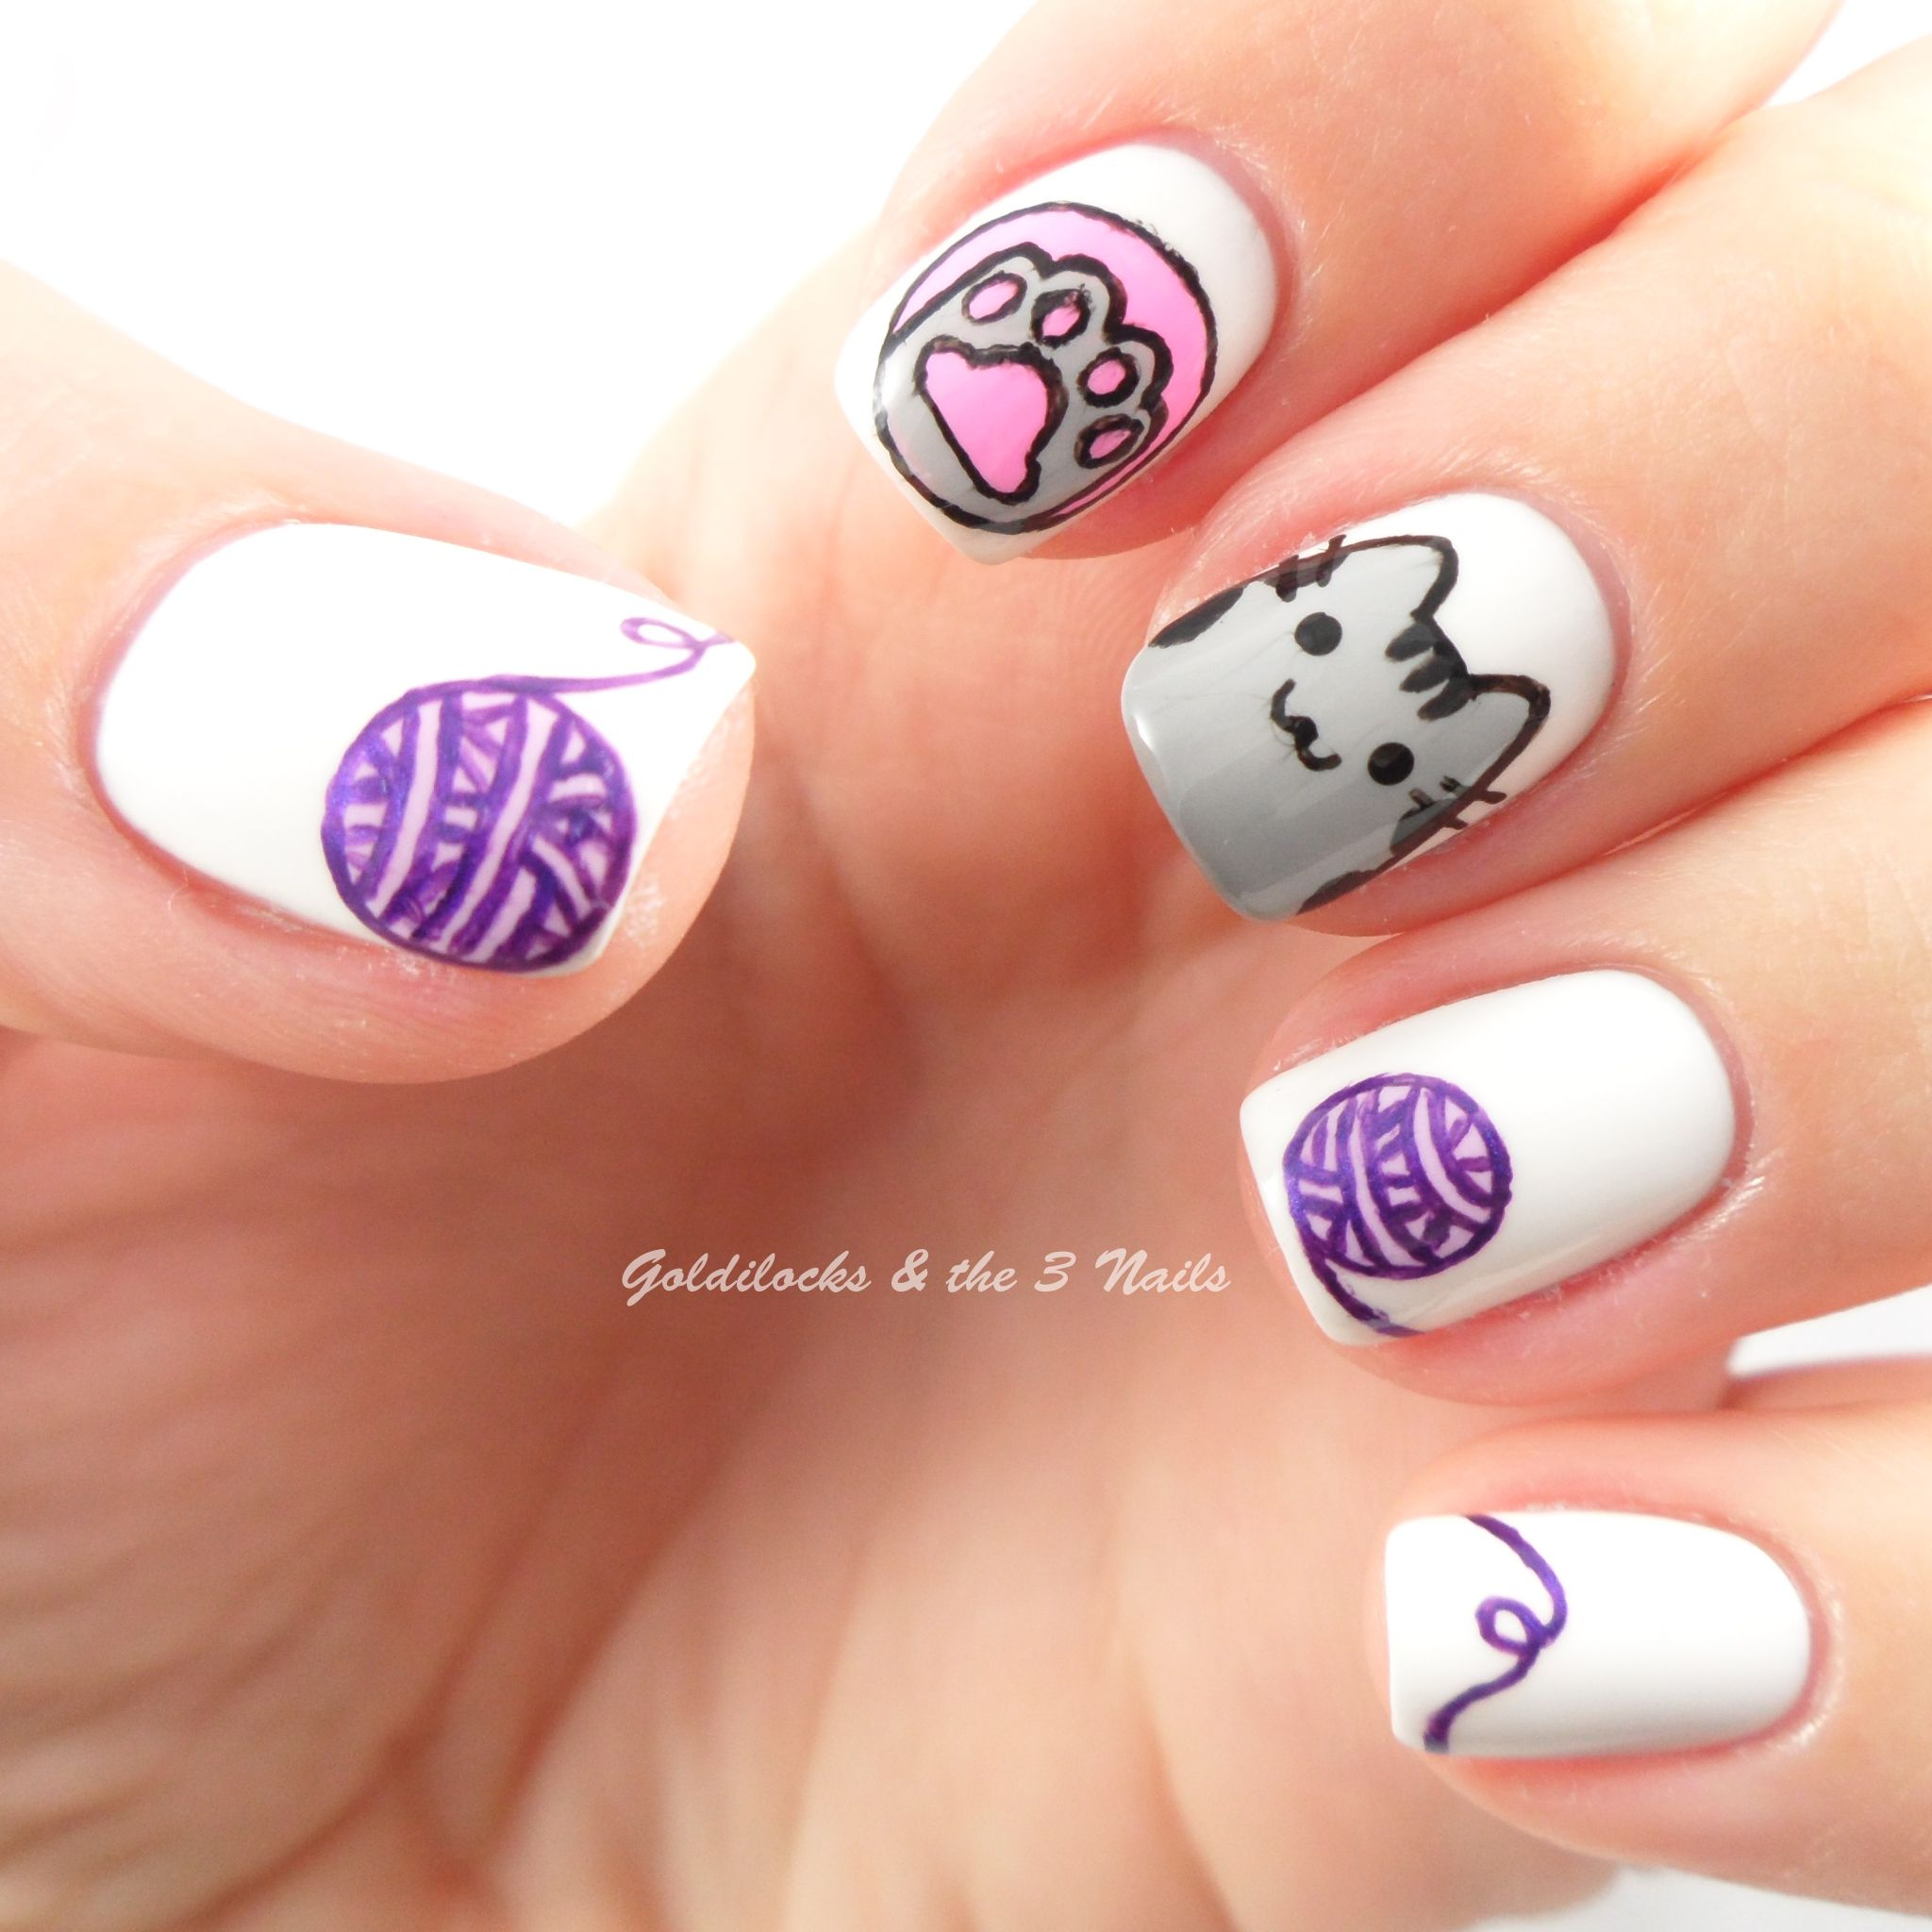 Sweet Cotton Candy Nail Colors and Designs | Pinterest | Pusheen cat ...